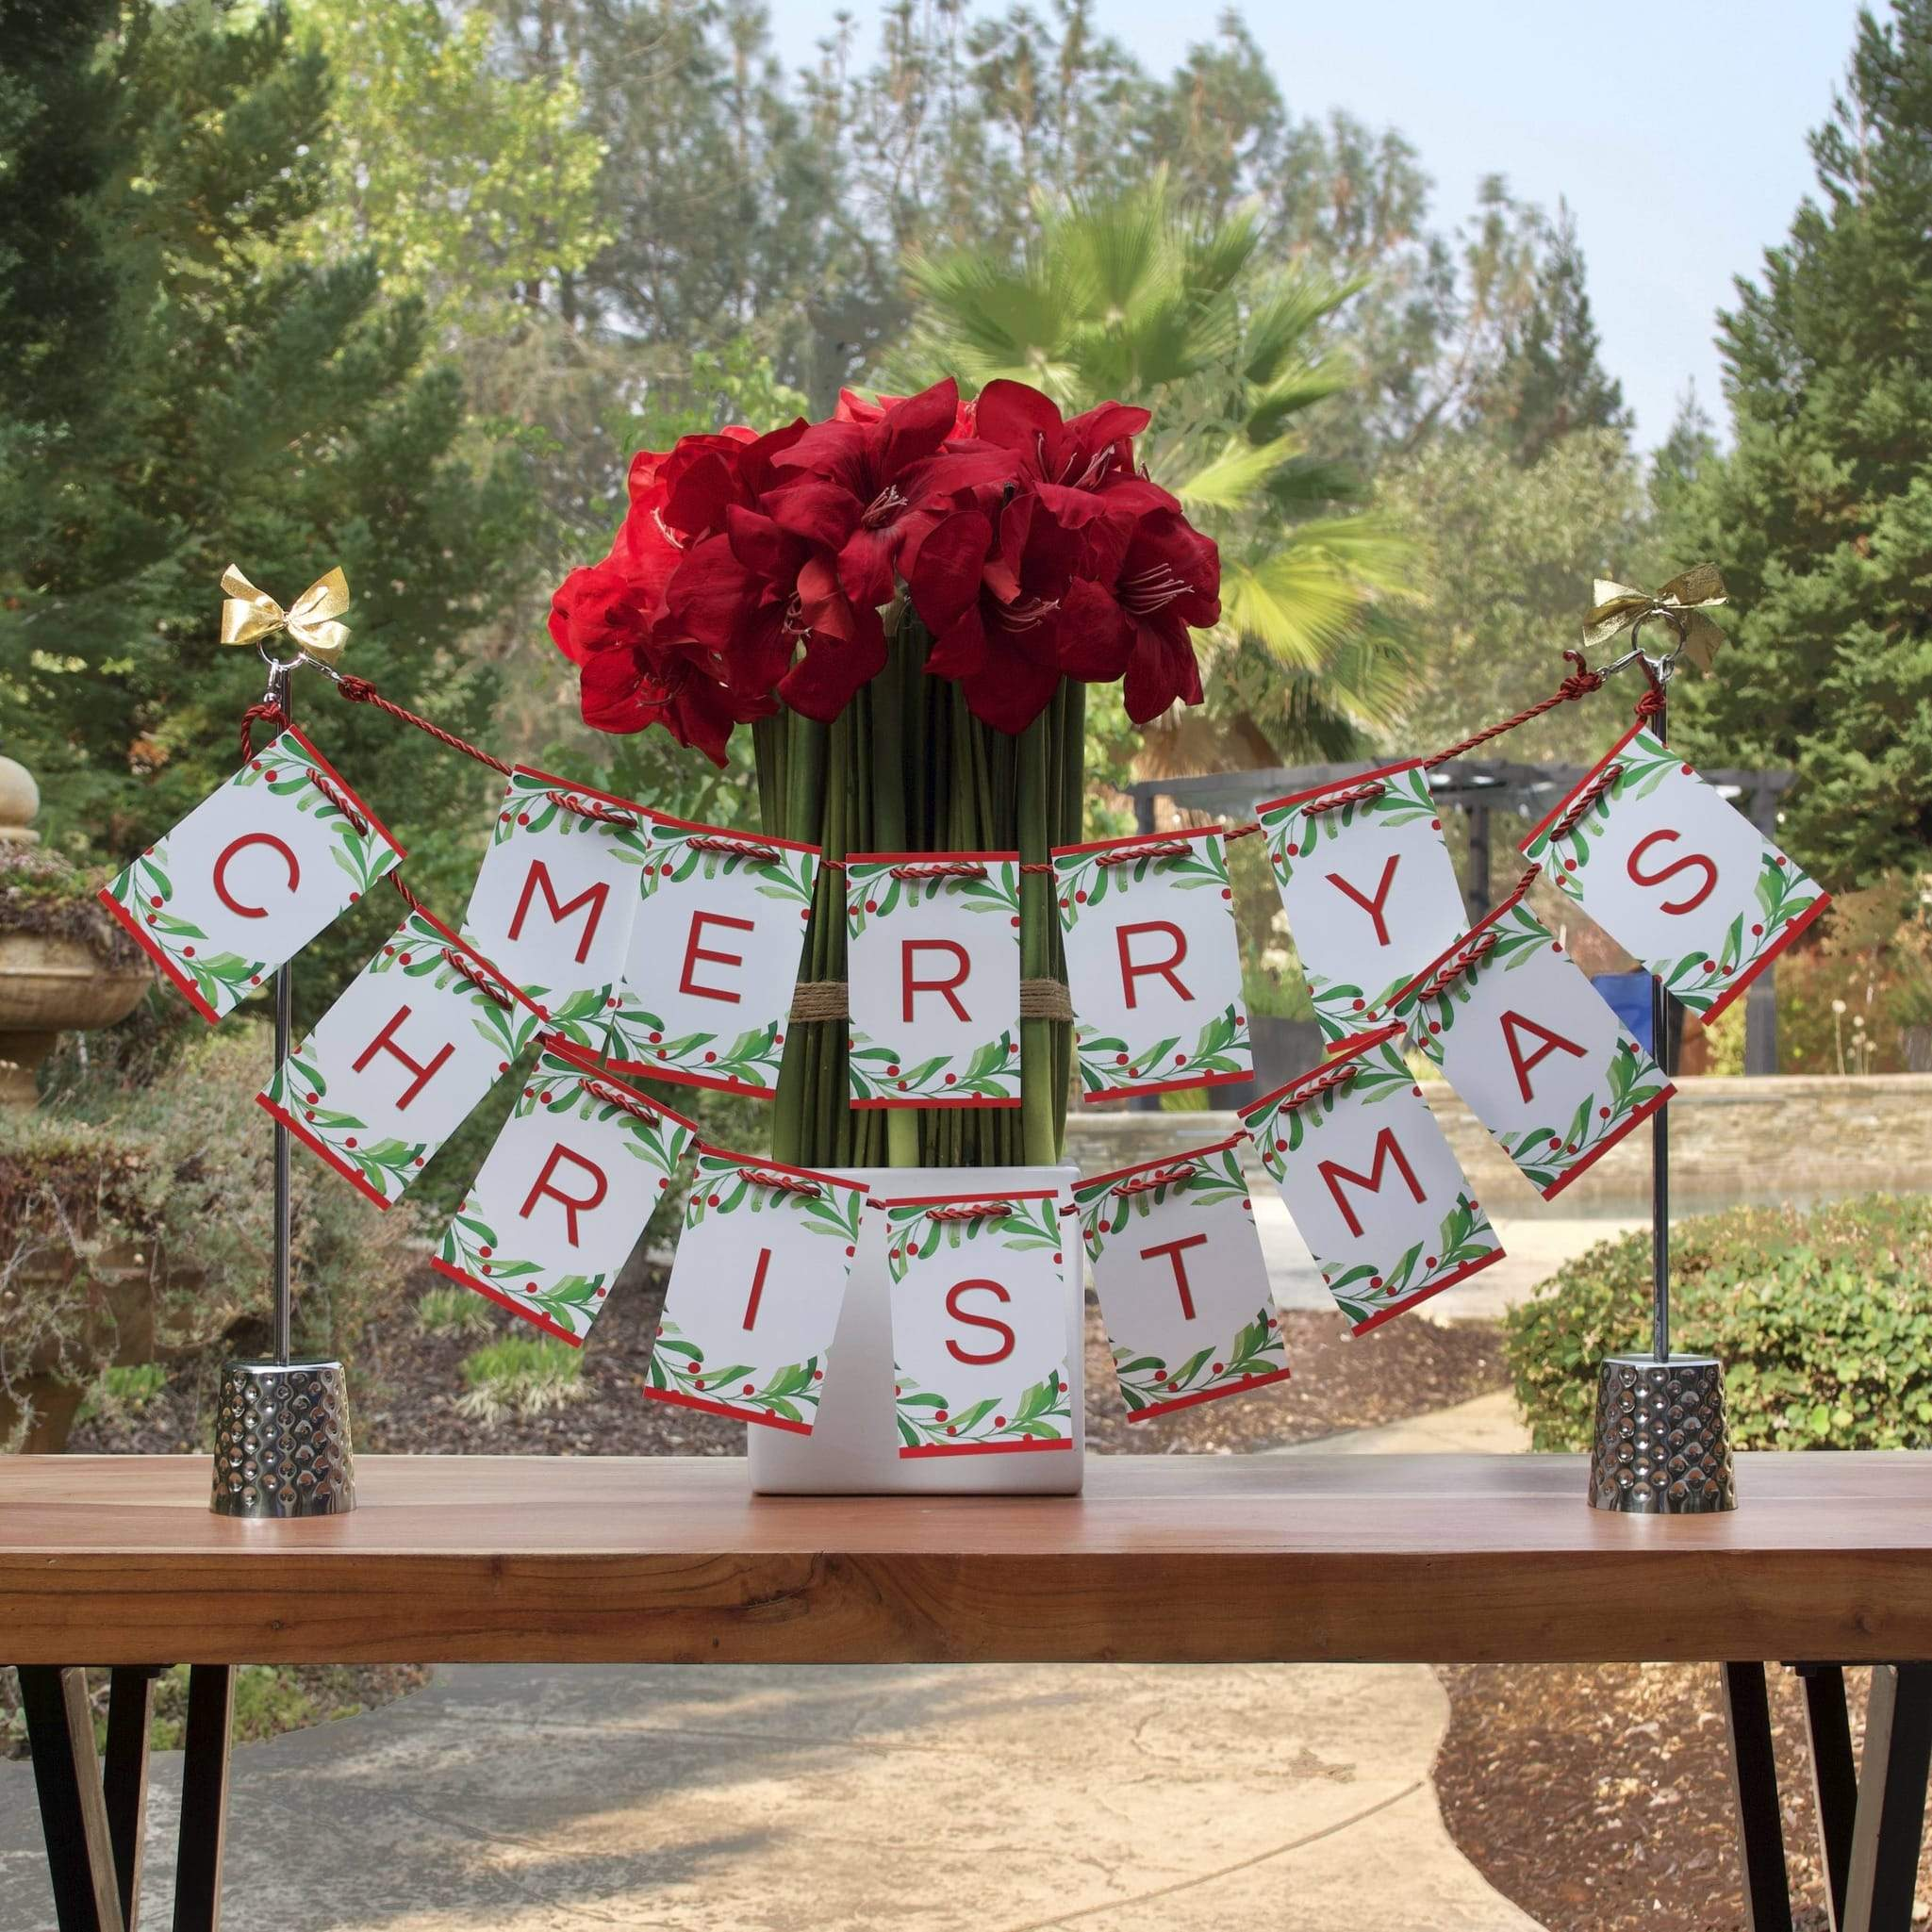 Centerpiece for Christmas holiday decor